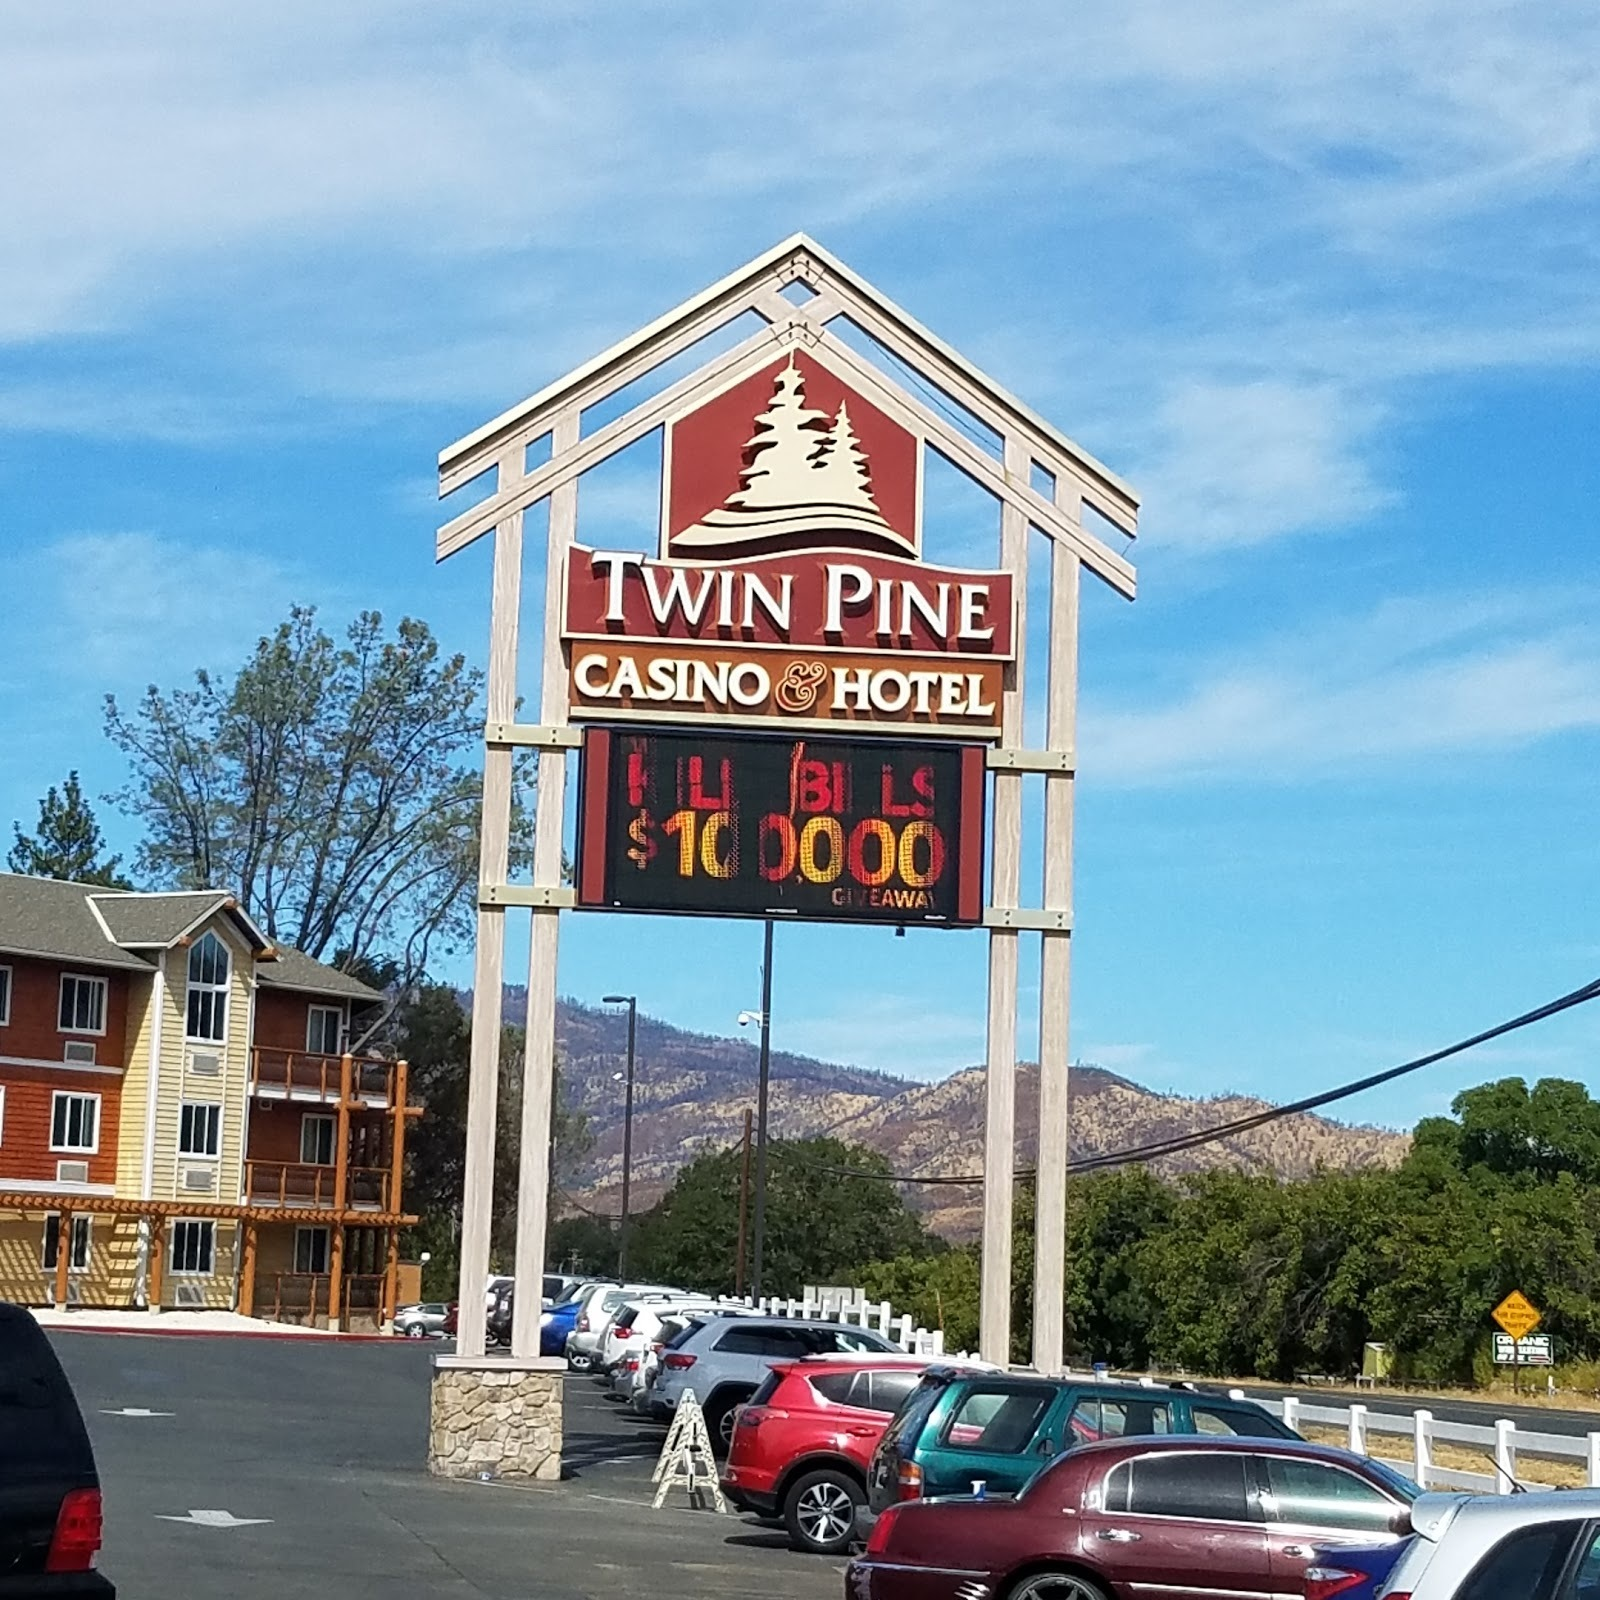 Twin Pine Casino - San Francisco Casino - Hotel Fresno - Yosemite Hotels